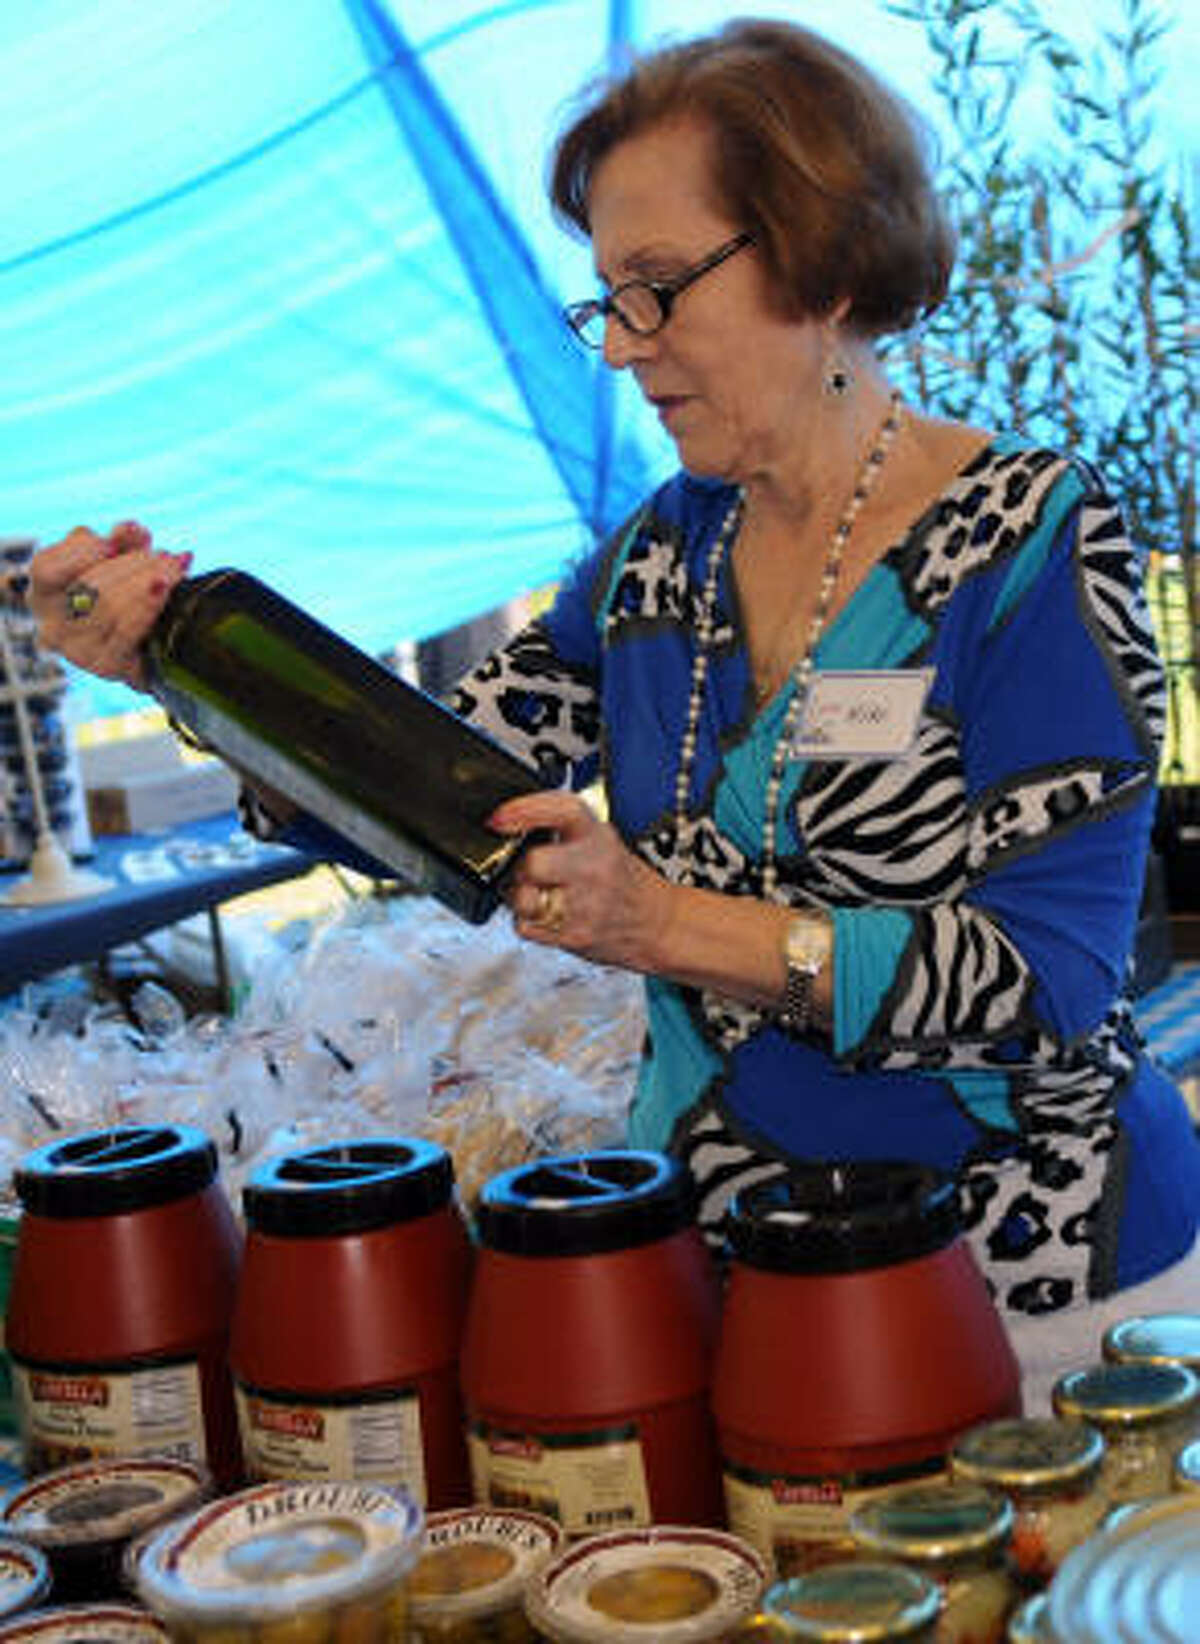 Kiki Pantazis looks over some olive oil for sale at the 16th annual Clear Lake Greek Festival at Clear Lake Park.